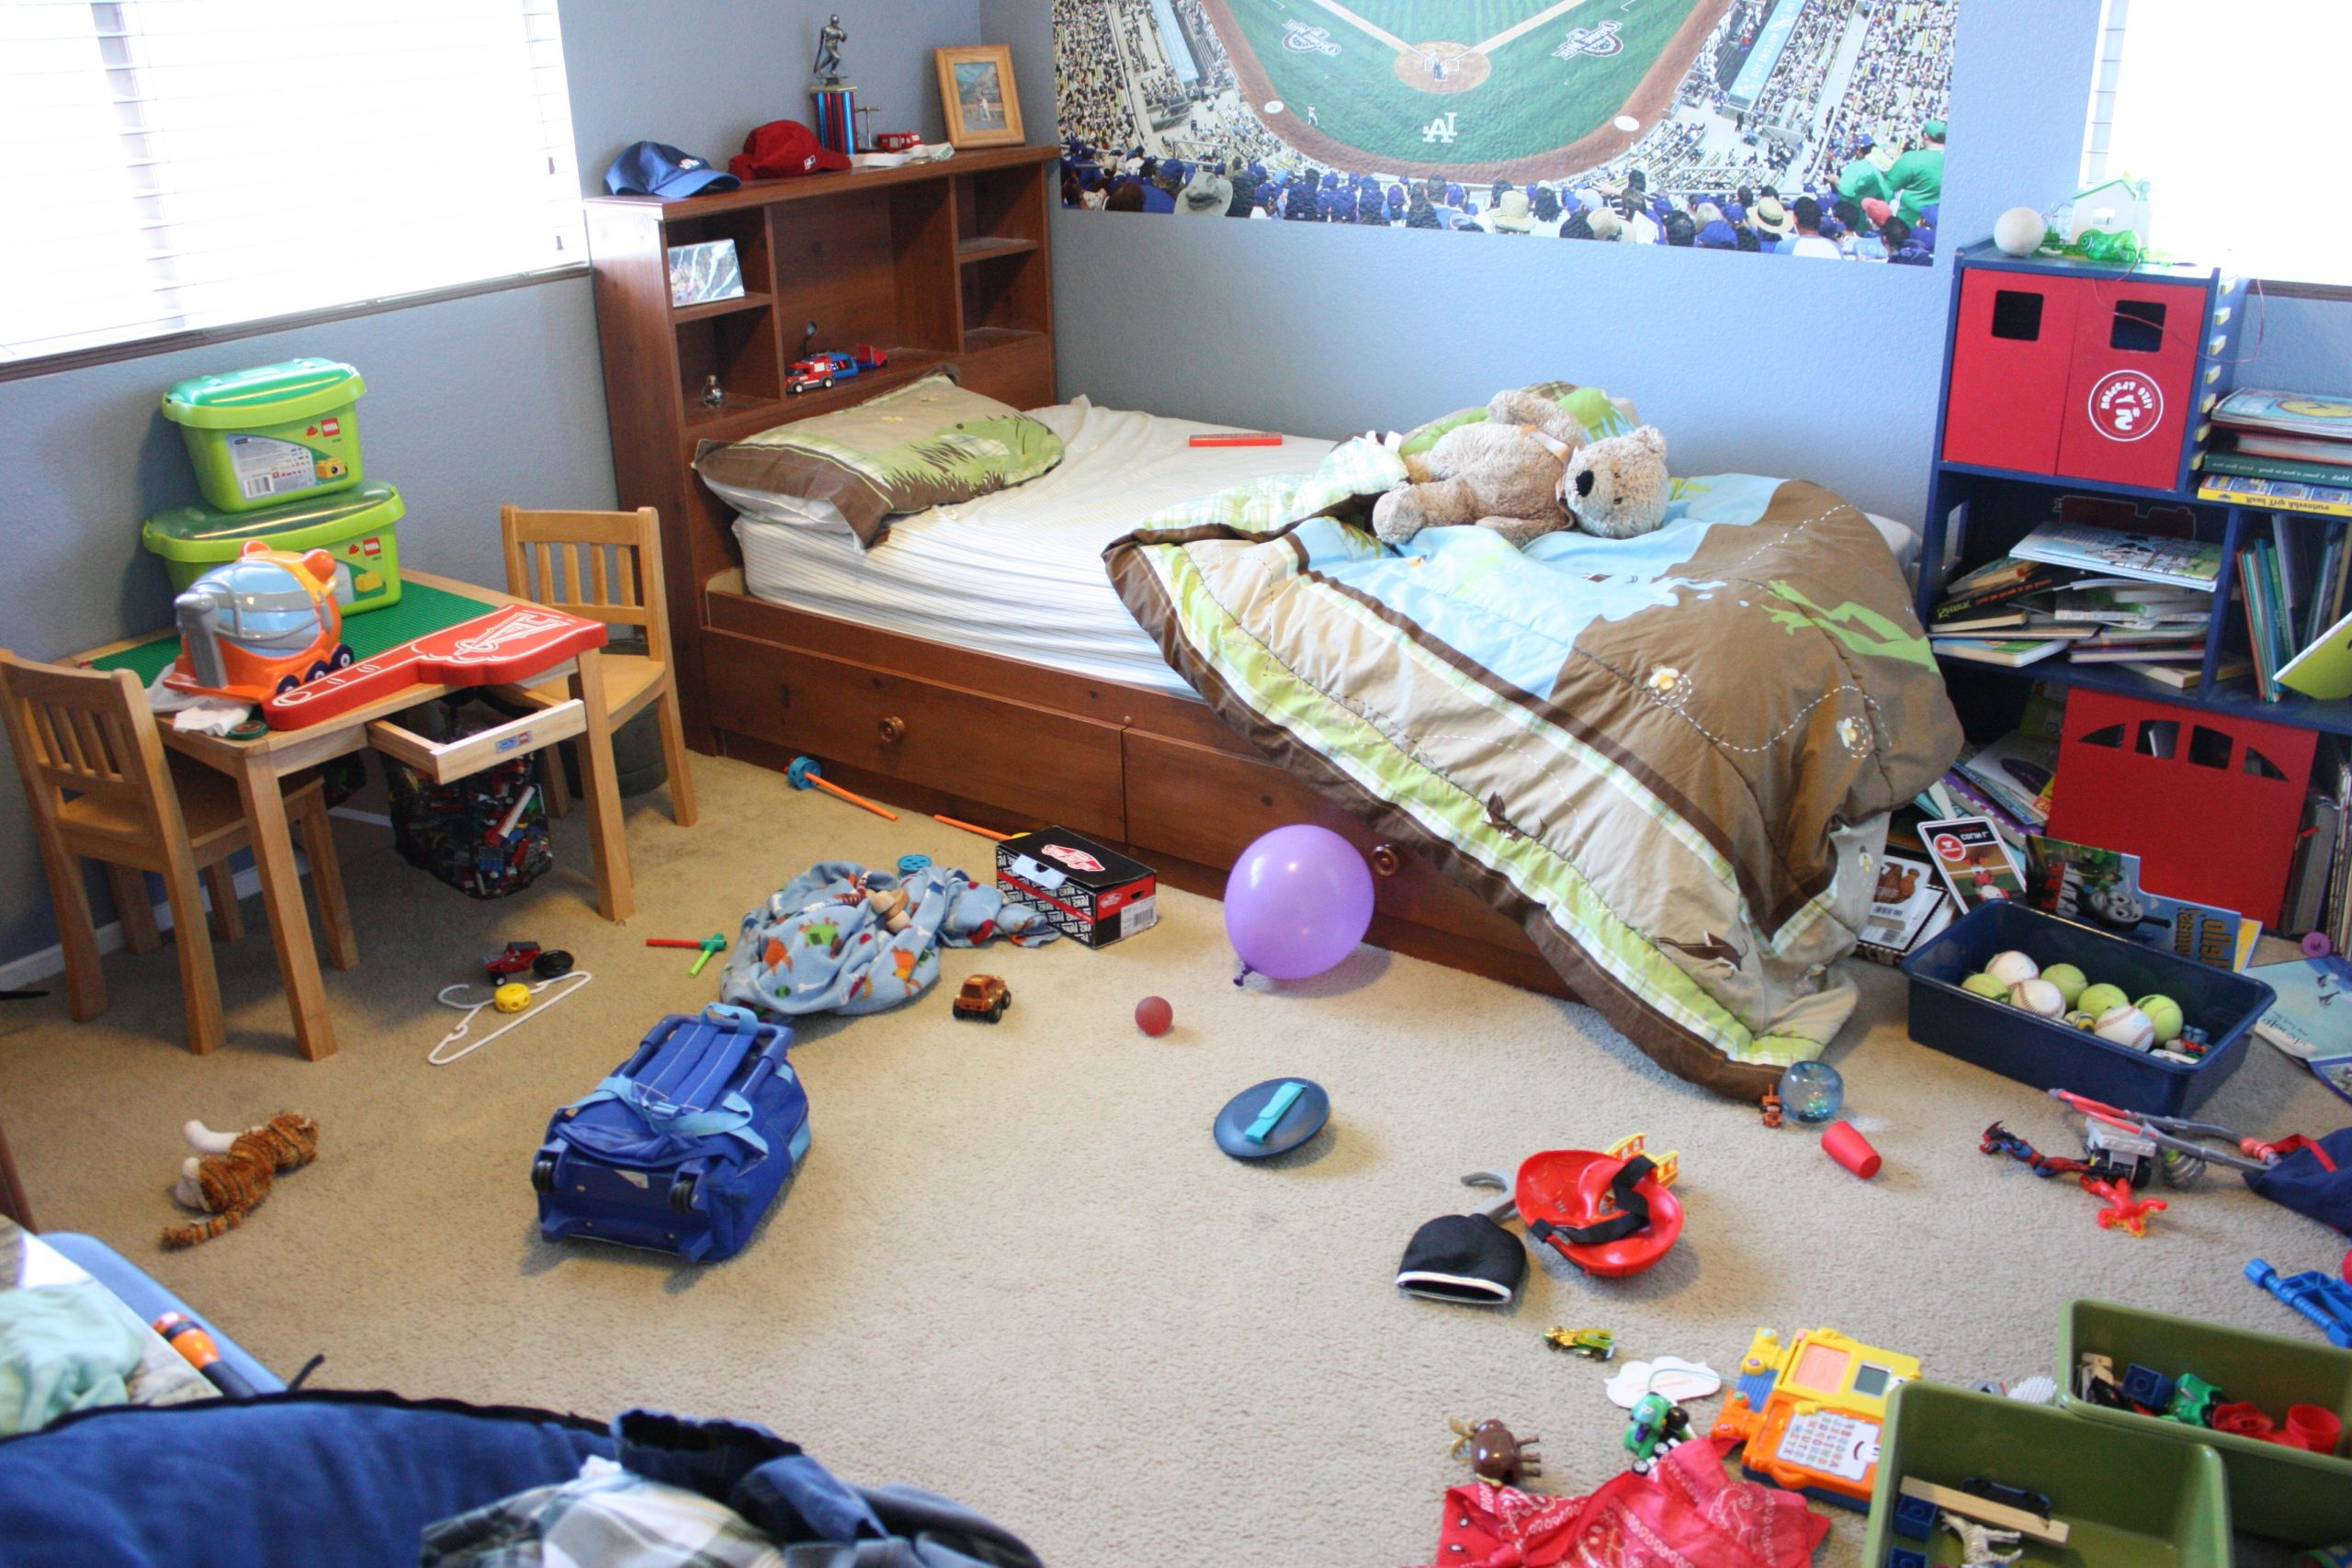 how to clean and organize a messy room house style design